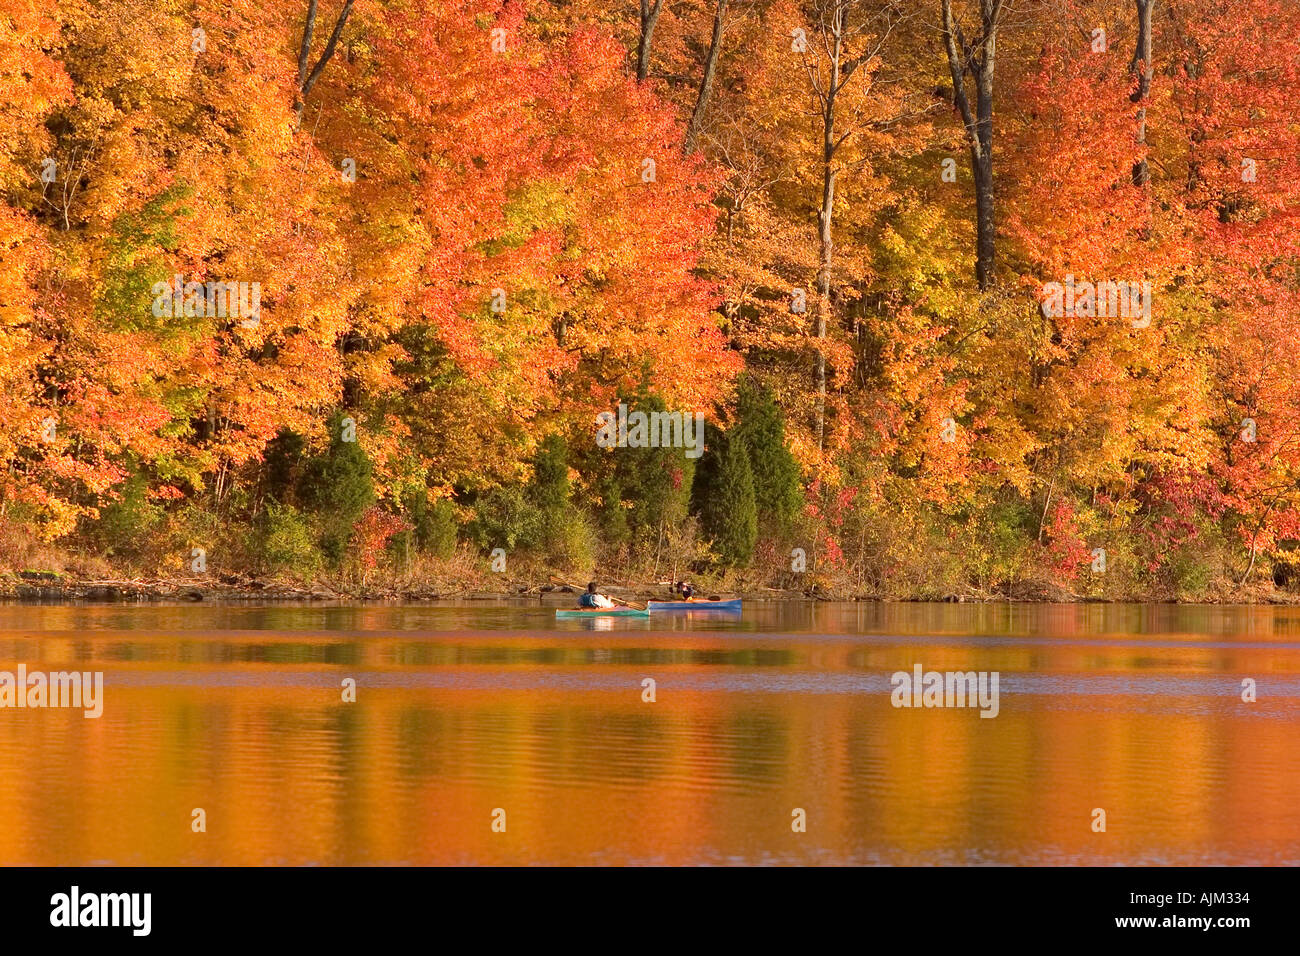 People kyaking on golden lake with reflective fall foliage - Stock Image